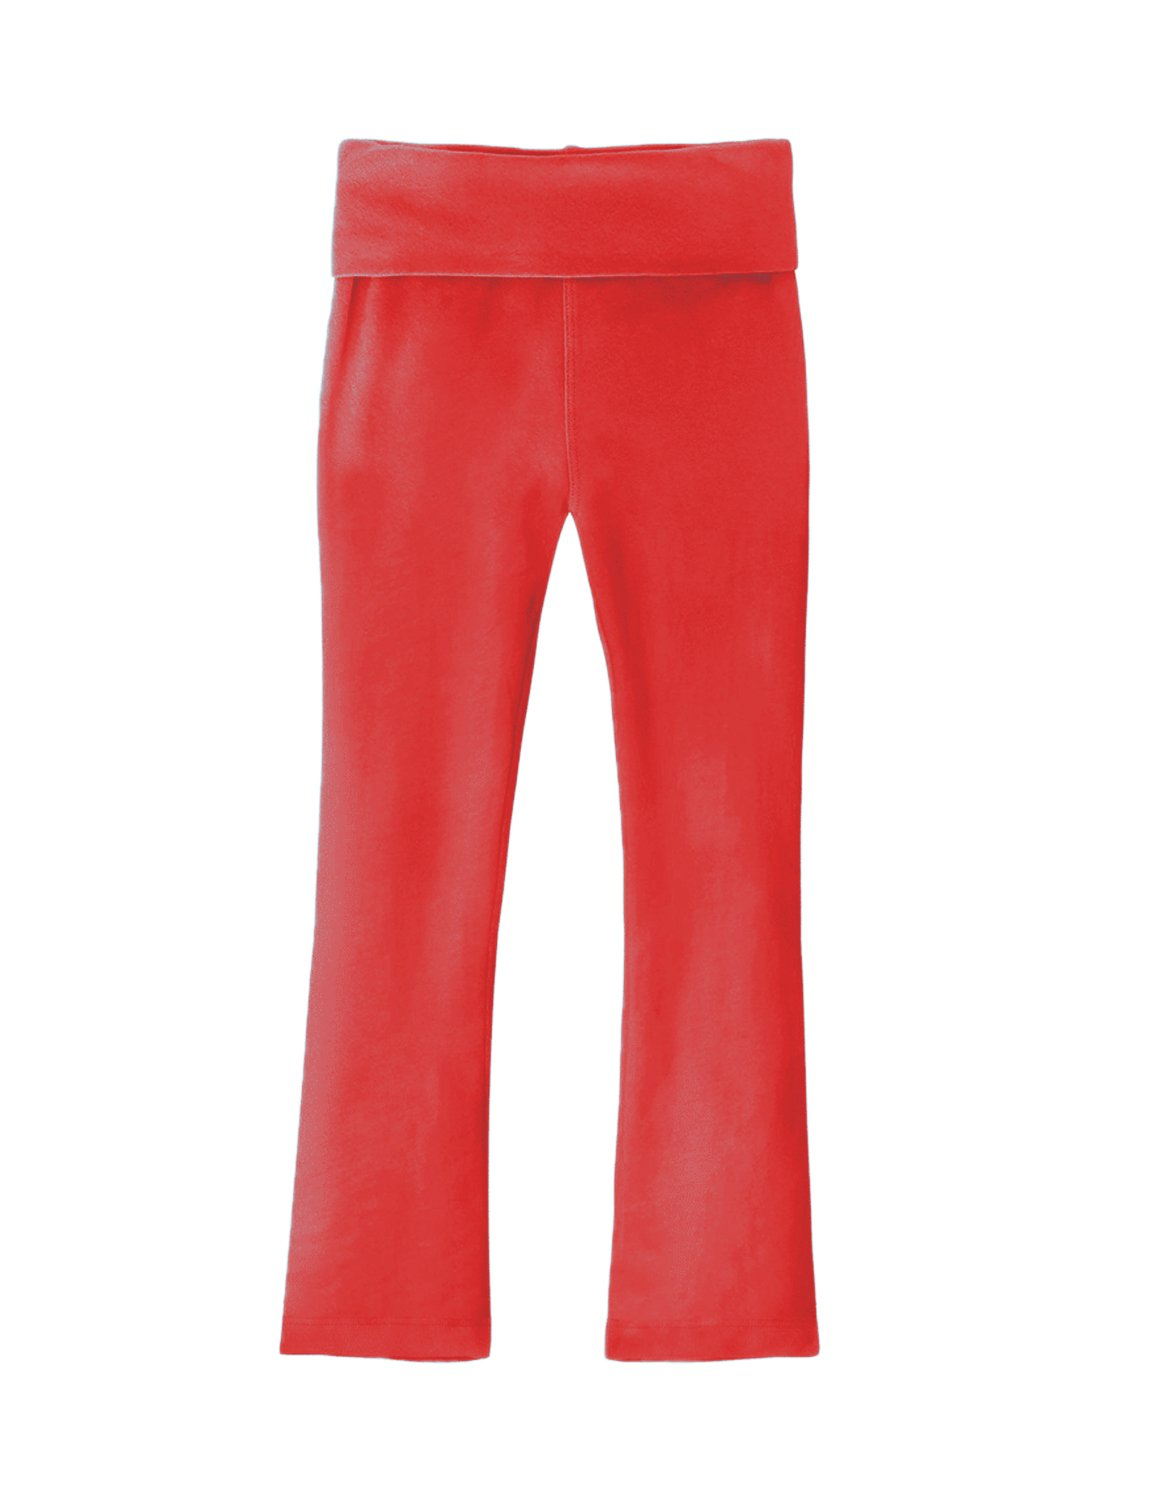 Clementine Apparel Girls Yoga Pants for Girls MG-3762